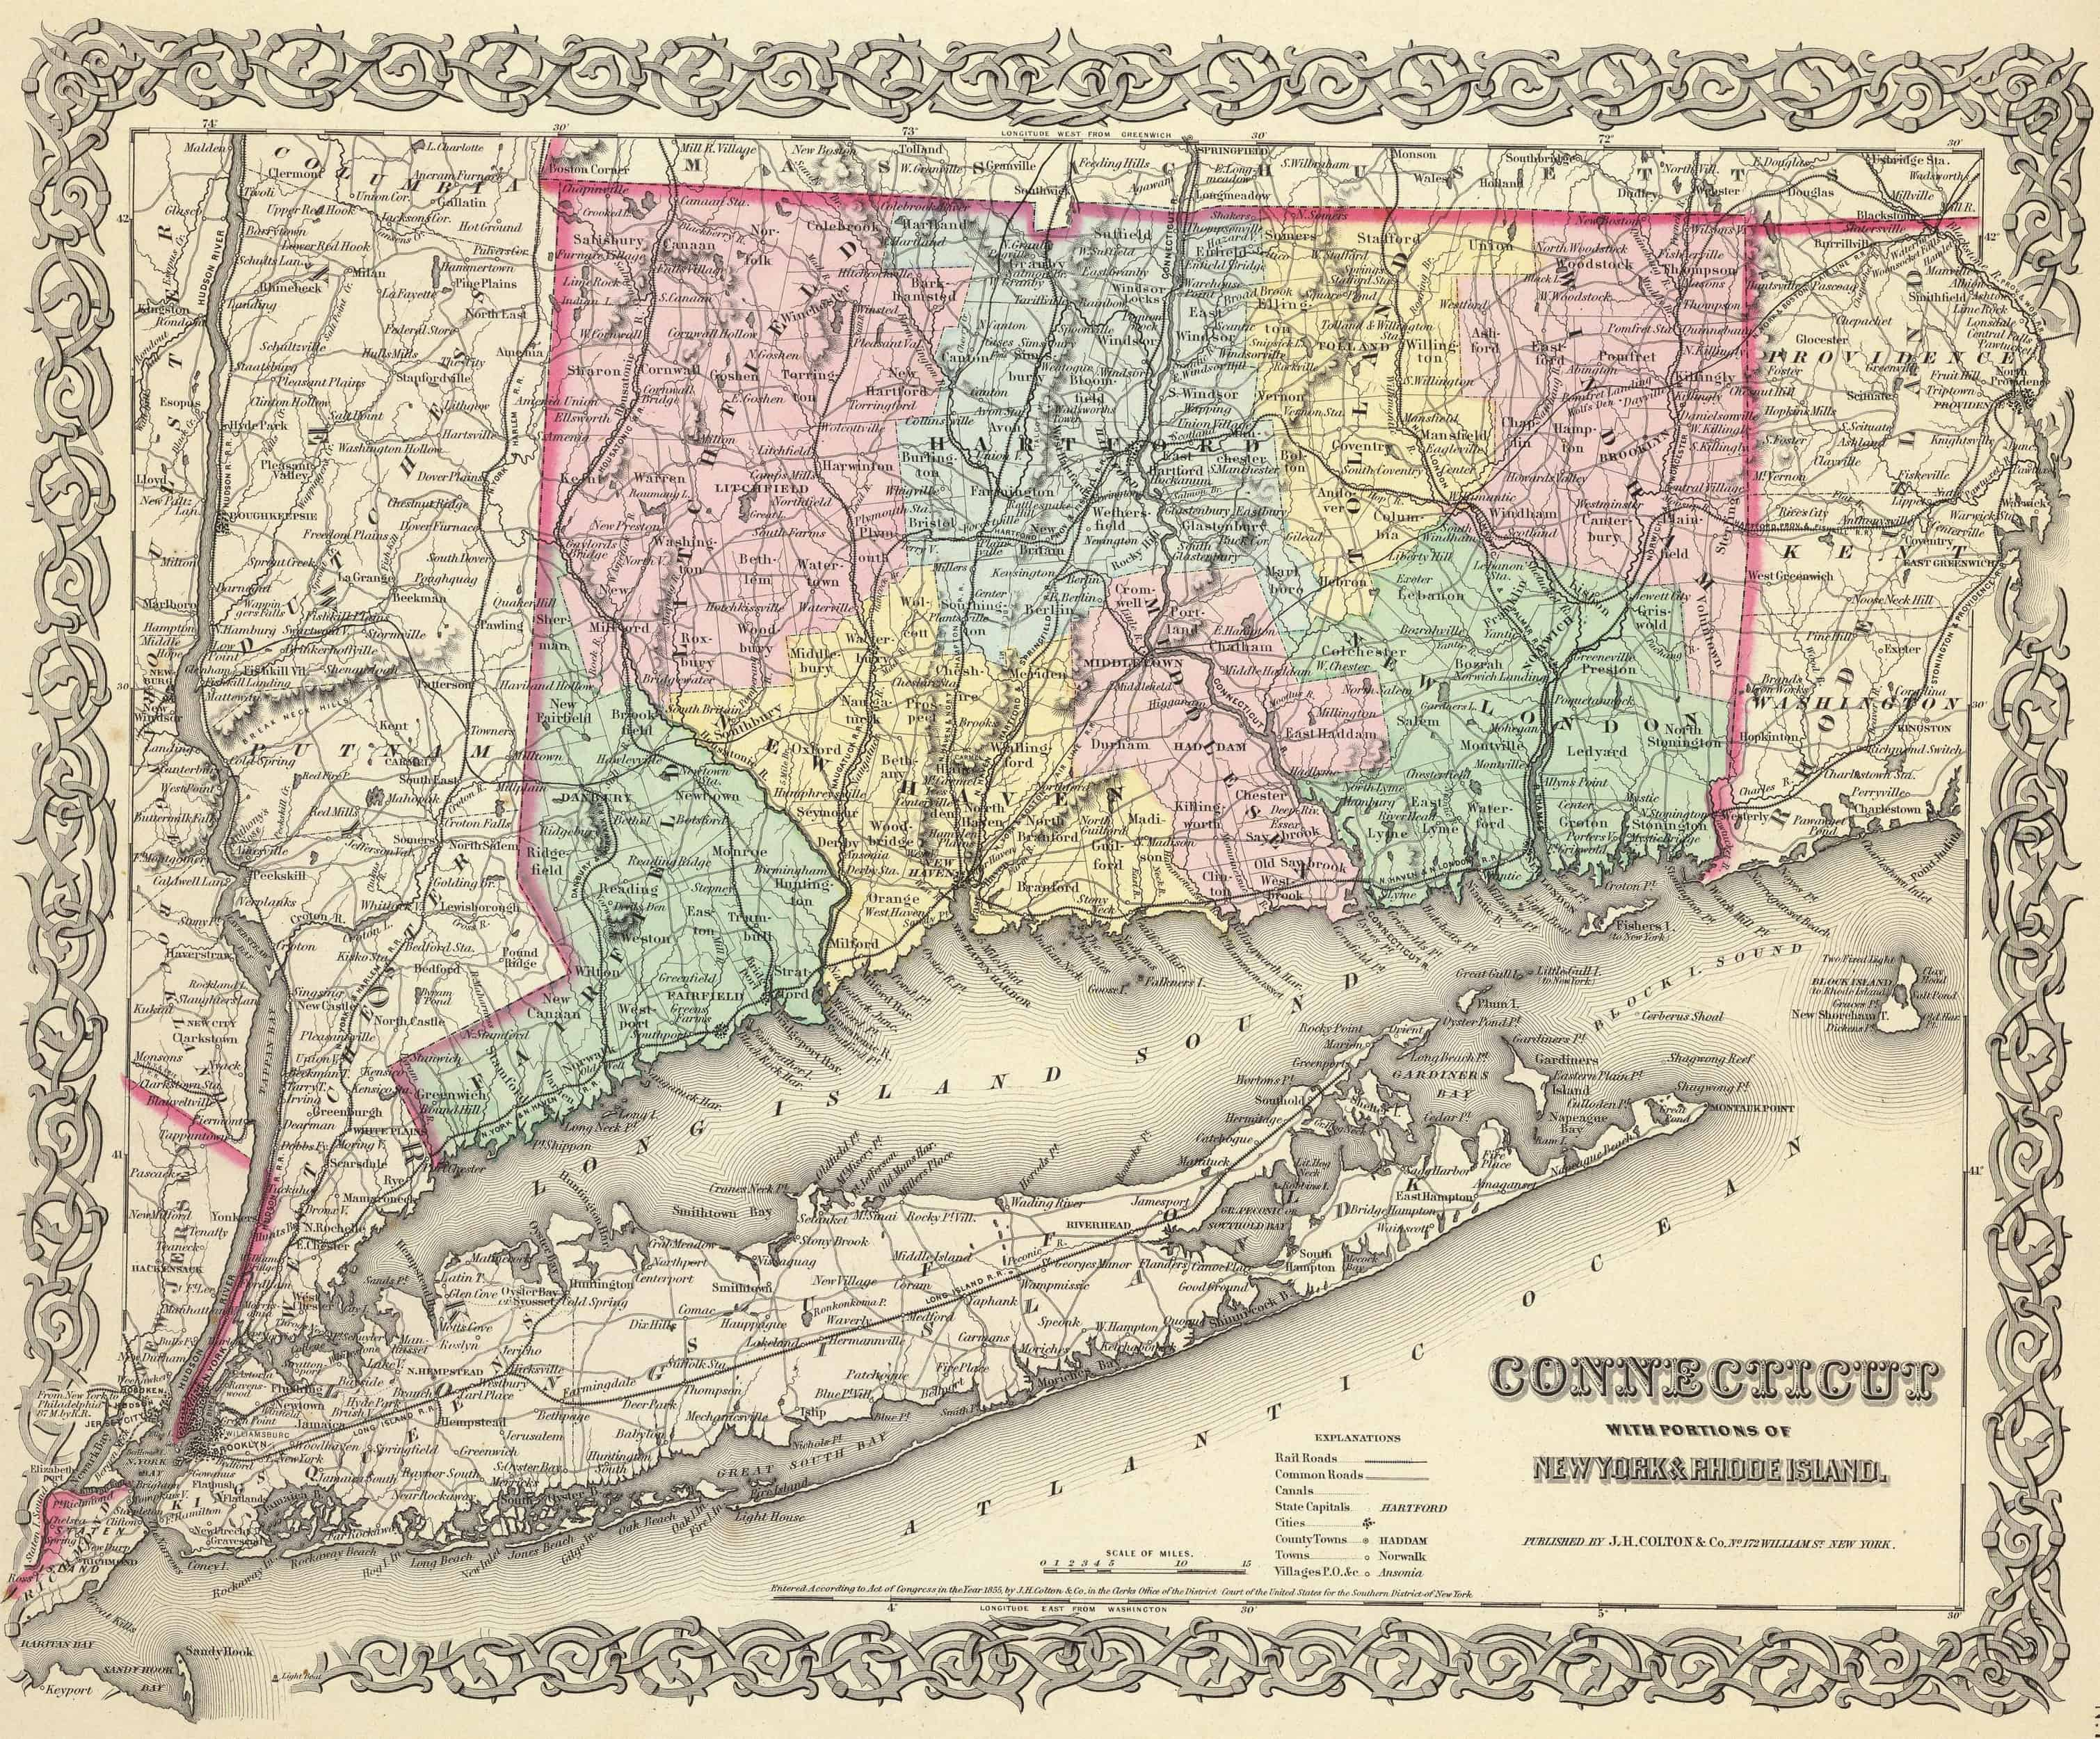 Old Historical City, County and State Maps of Connecticut